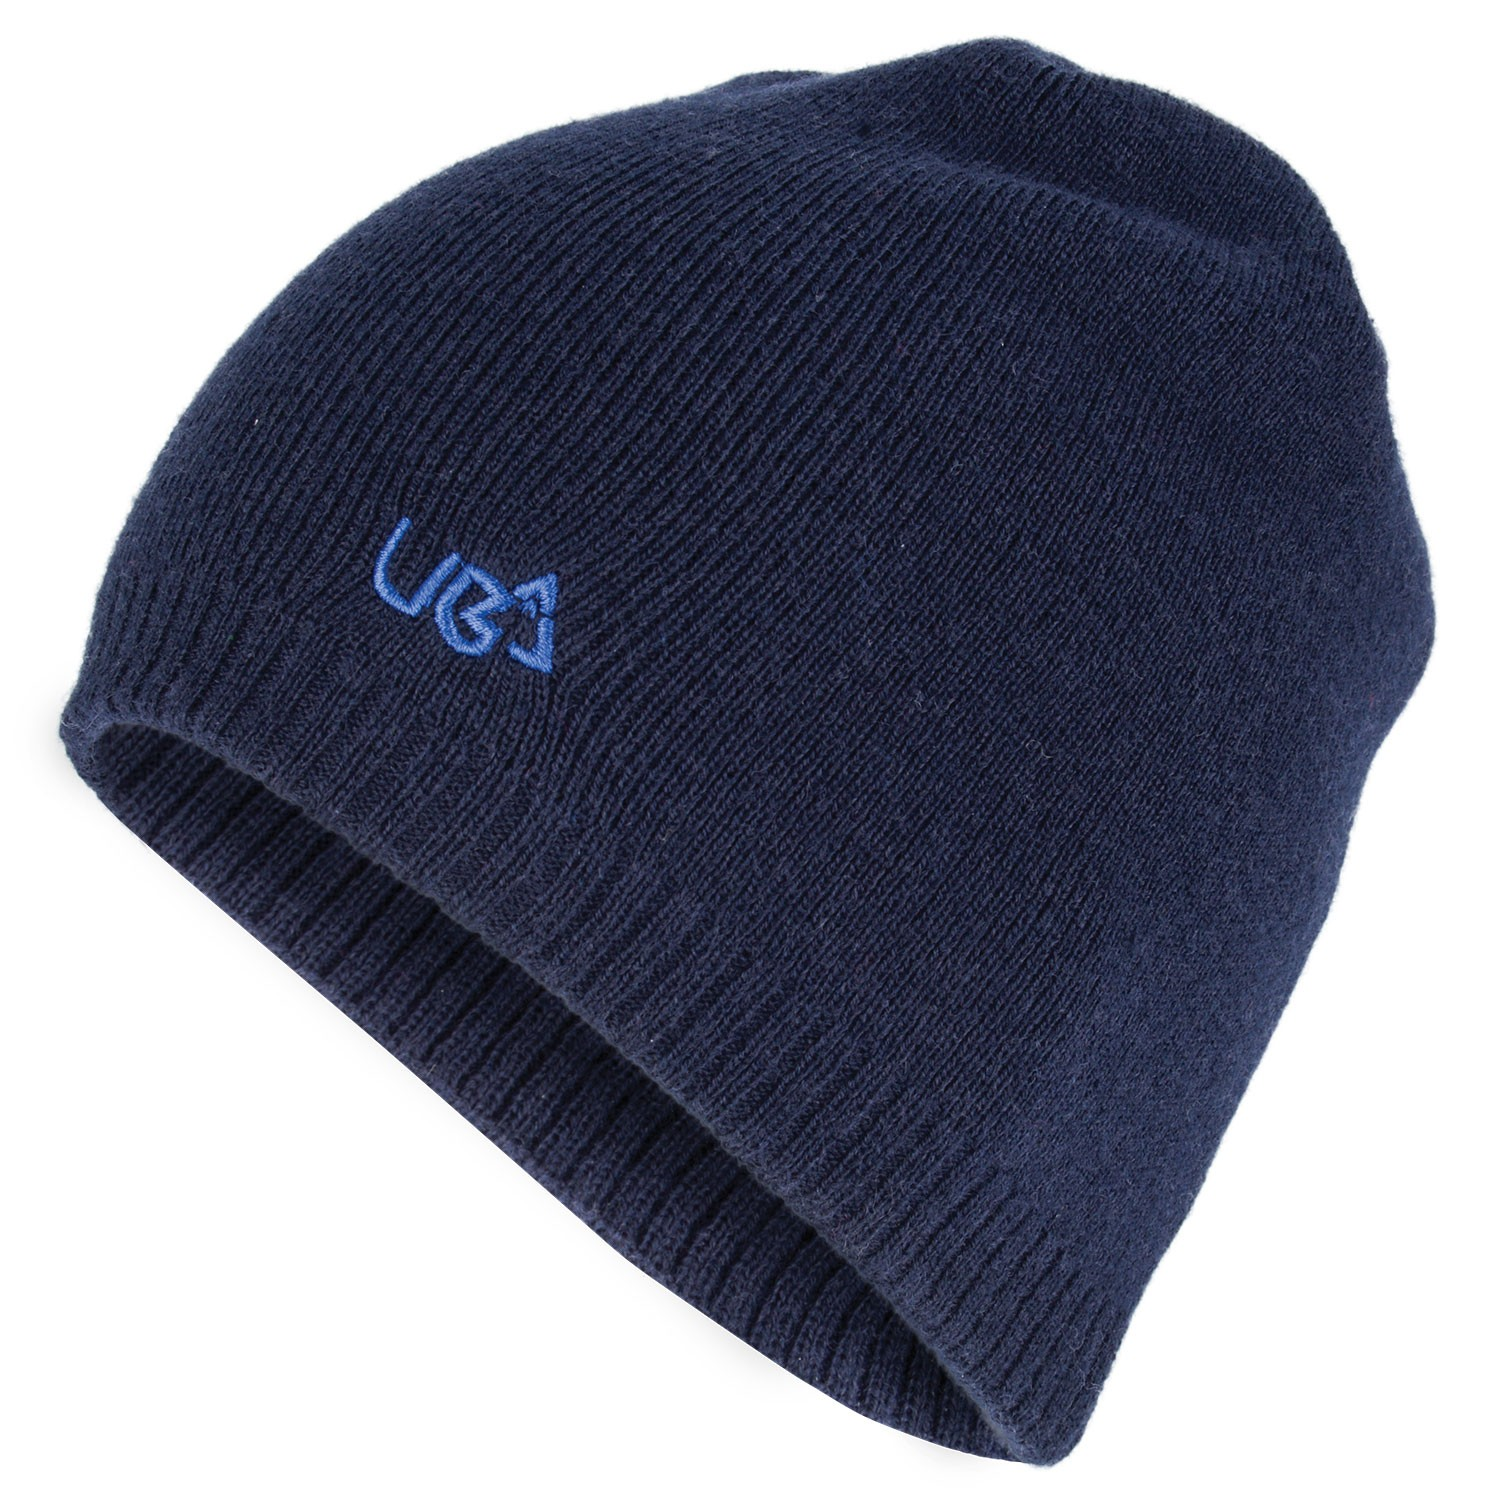 Plain Navy Blue Beanie Hat Nomad- Free Delivery Over £20 - Urban Beach a49d36d0c8b